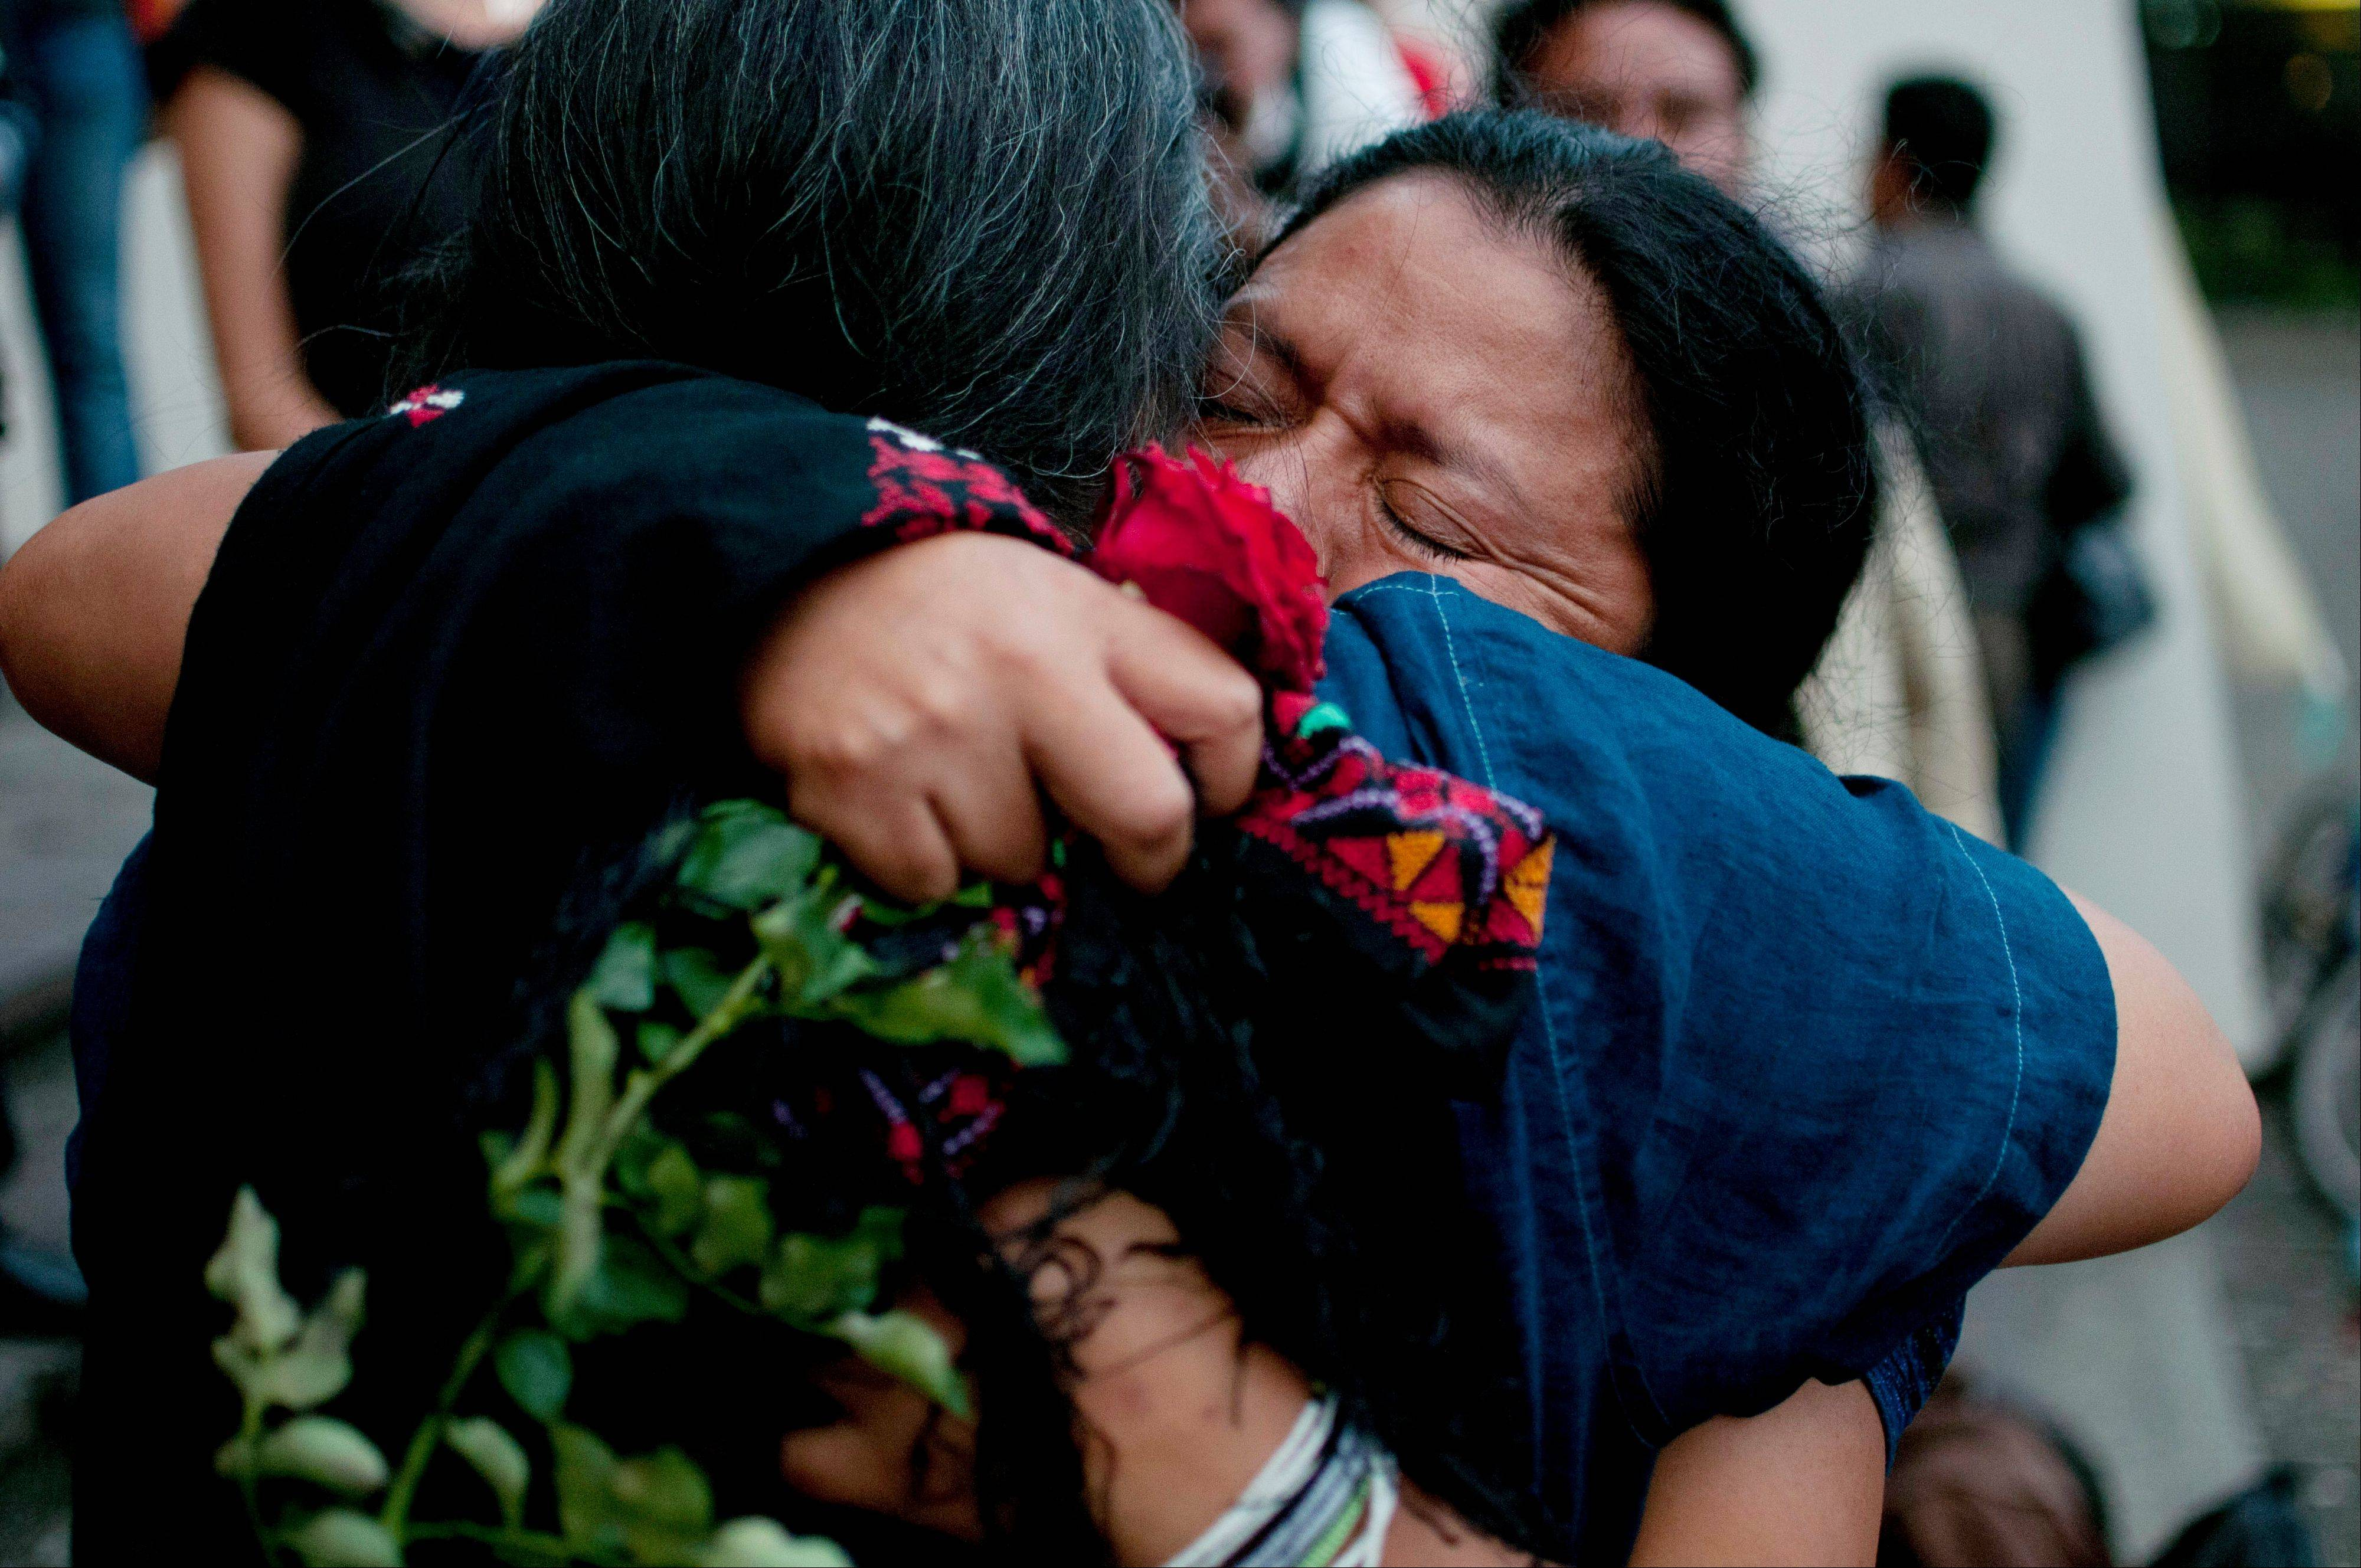 The relatives of people who were killed in the country's civil war embrace after the judge's guilty verdict Friday for Guatemala's former dictator Jose Efrain Rios Montt.